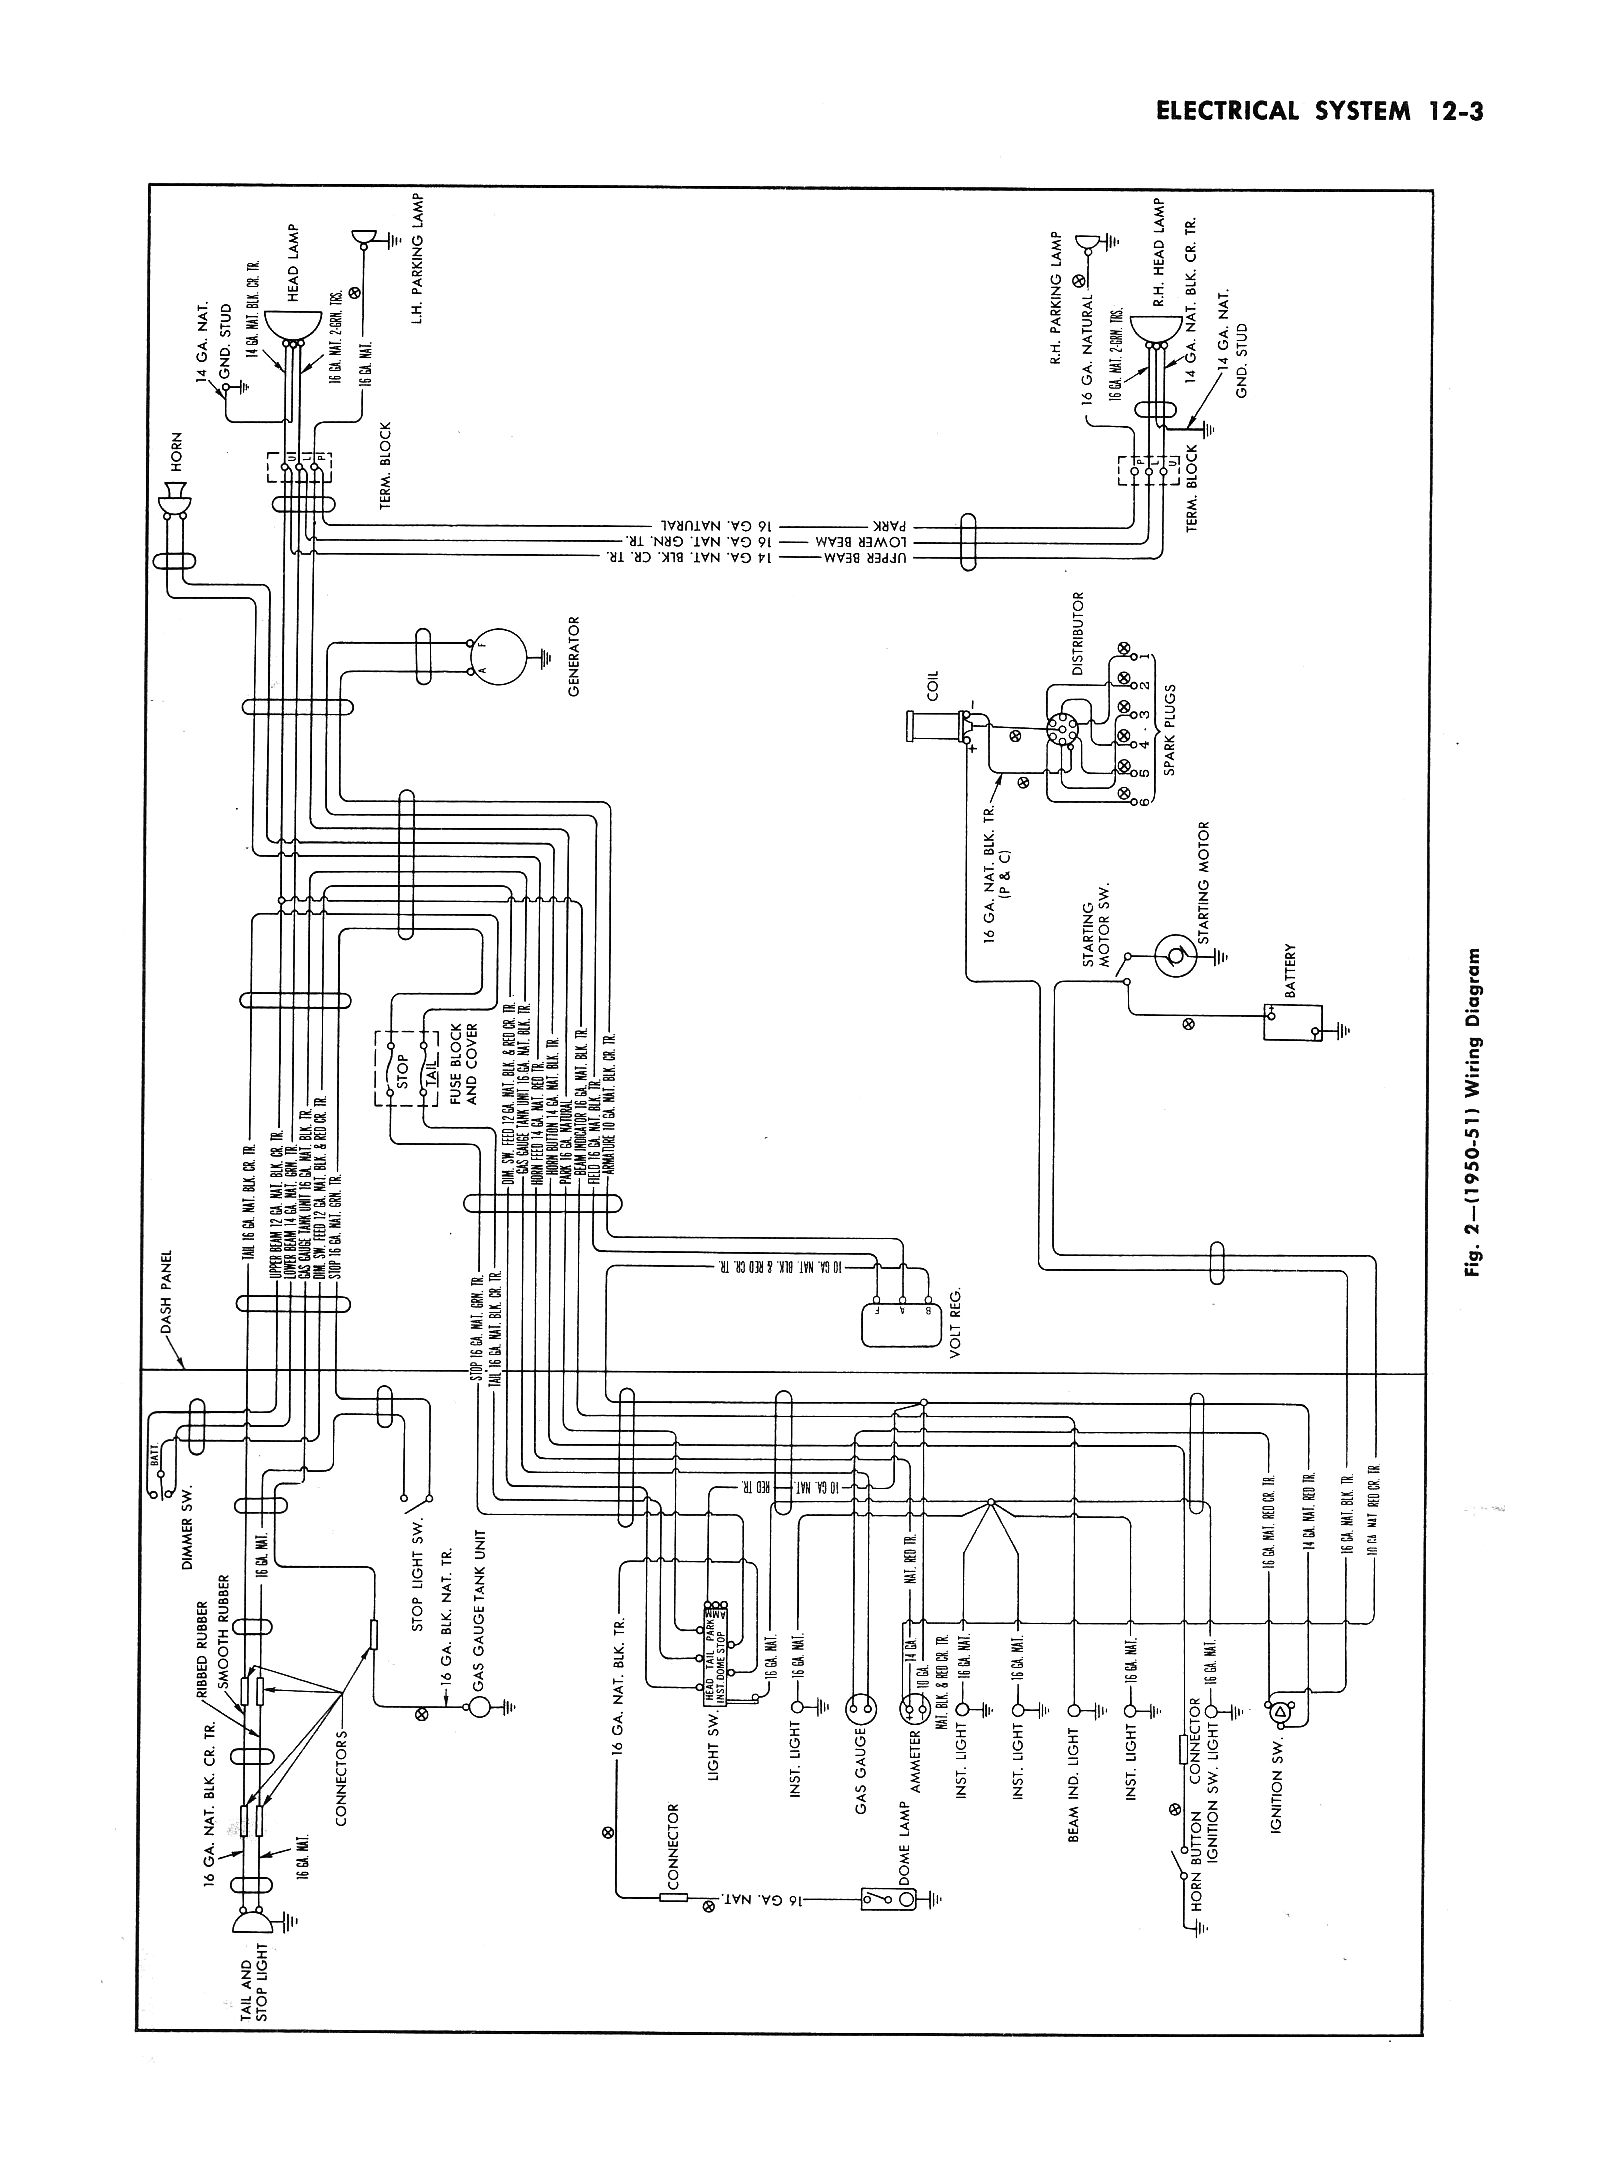 62 Et Ignition Switch Wiring Diagram | Wiring Liry Universal Ignition Switch Wiring Diagram Four Wheeler on club car ignition switch diagram, ford steering column wiring diagram, simple auto wiring diagram, starter wiring diagram, 1-wire alternator wiring diagram, evinrude 28 spl ignition wiring diagram, gm tachometer wiring diagram, 1990 f250 truck wiring diagram, distributor wiring diagram, universal ignition switch installation, garden tractor ignition switch diagram, ignition coil wiring diagram, 12 volt solenoid wiring diagram, murray ignition switch diagram, saab 900 ignition wiring diagram, universal motorcycle ignition switch, ignition system wiring diagram, cdi ignition wiring diagram, chopper wiring diagram,